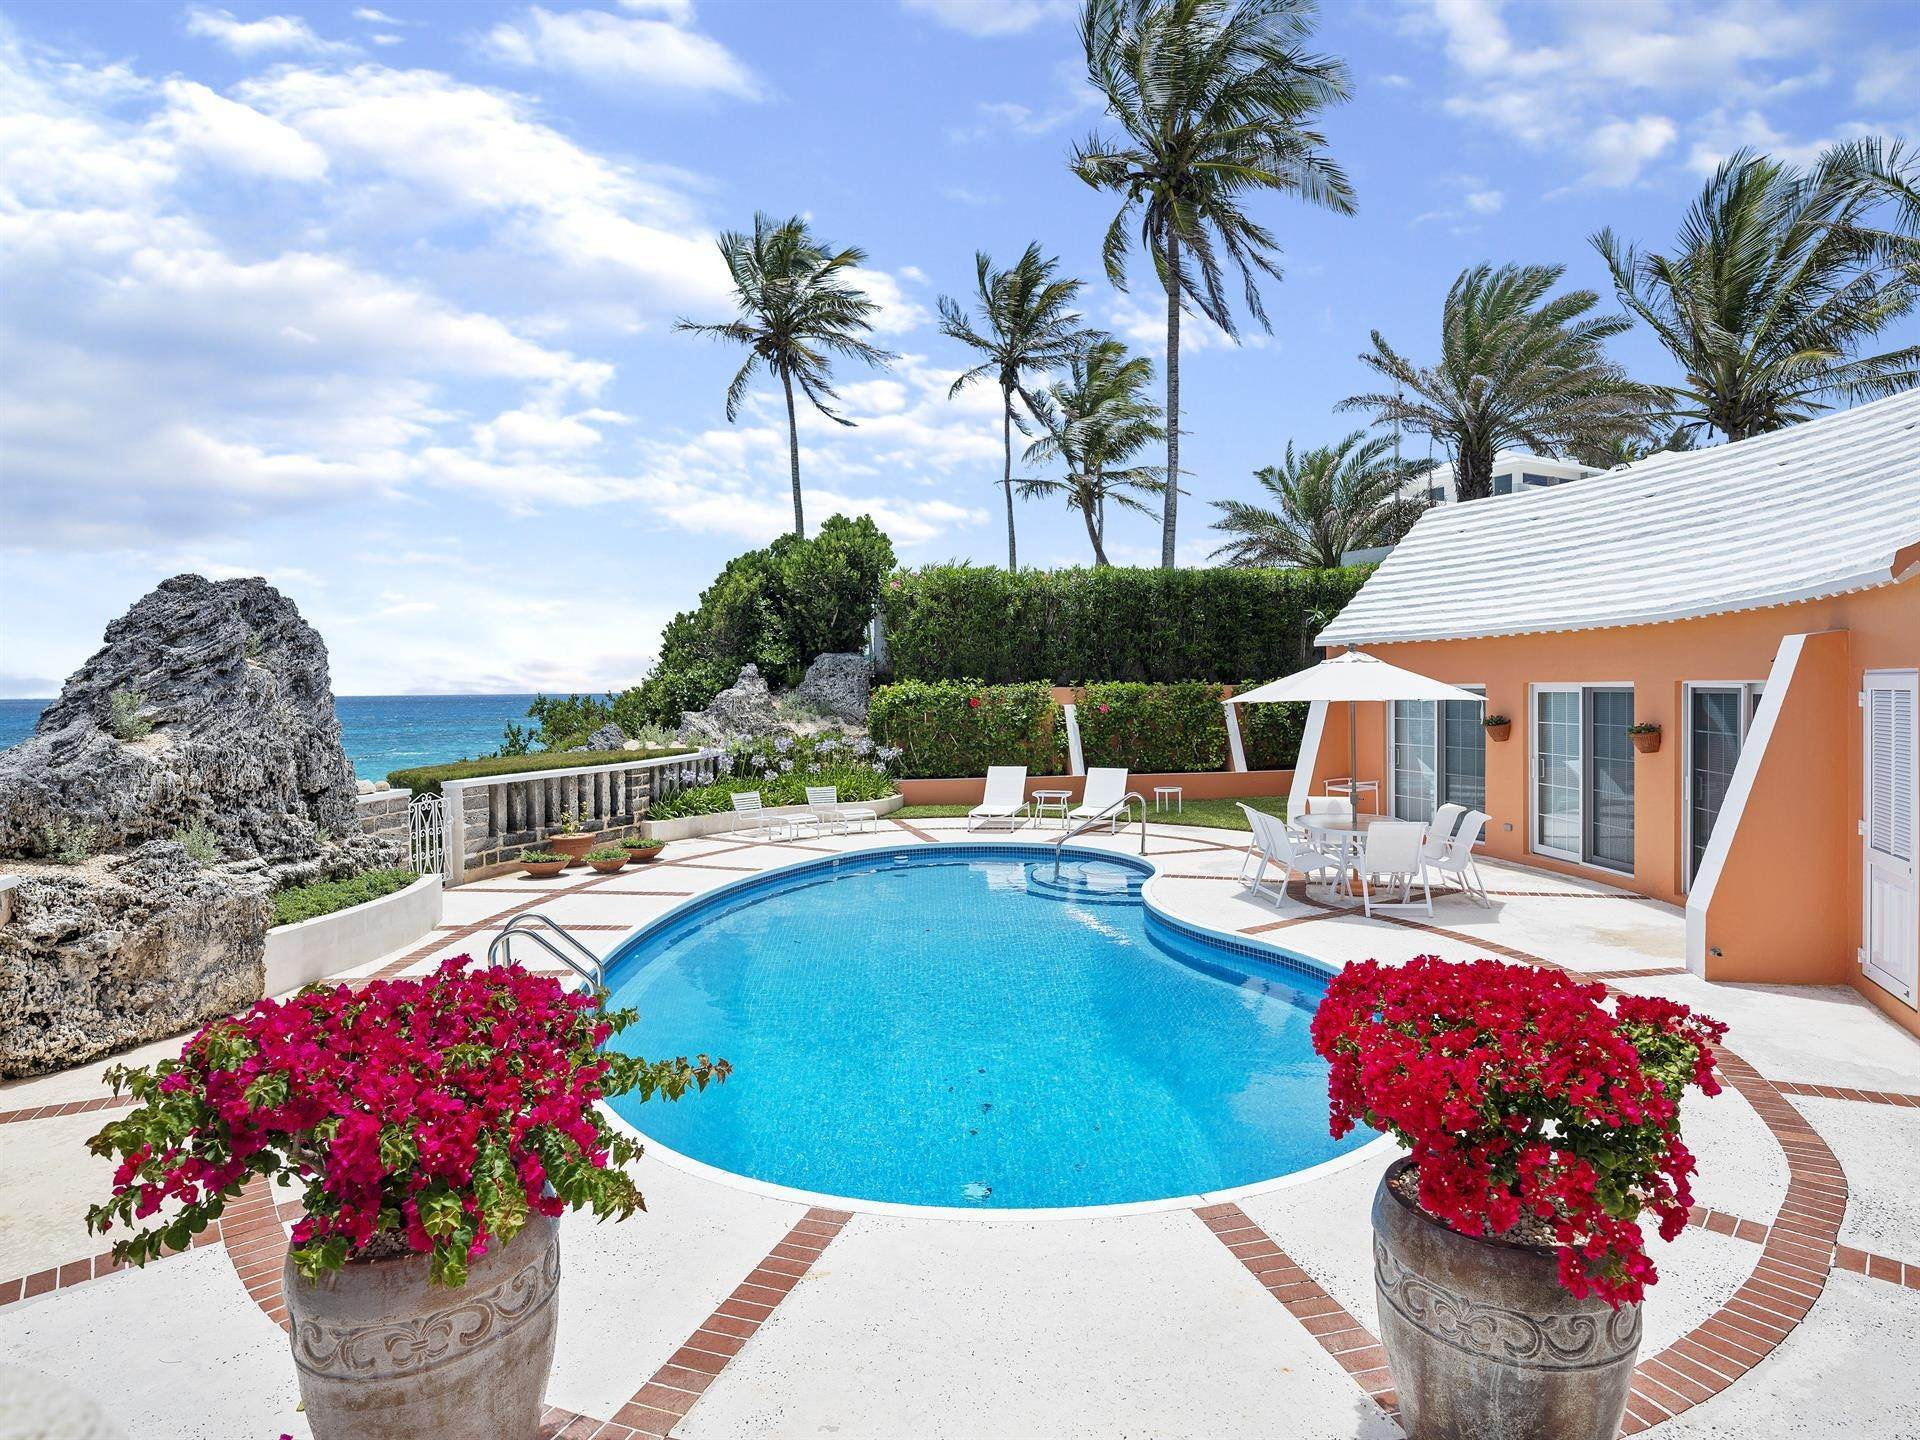 21. Beachfront Property at Sandcastles On The Beach 24 South Road, Warwick Parish, Bermuda WK02 Bermuda